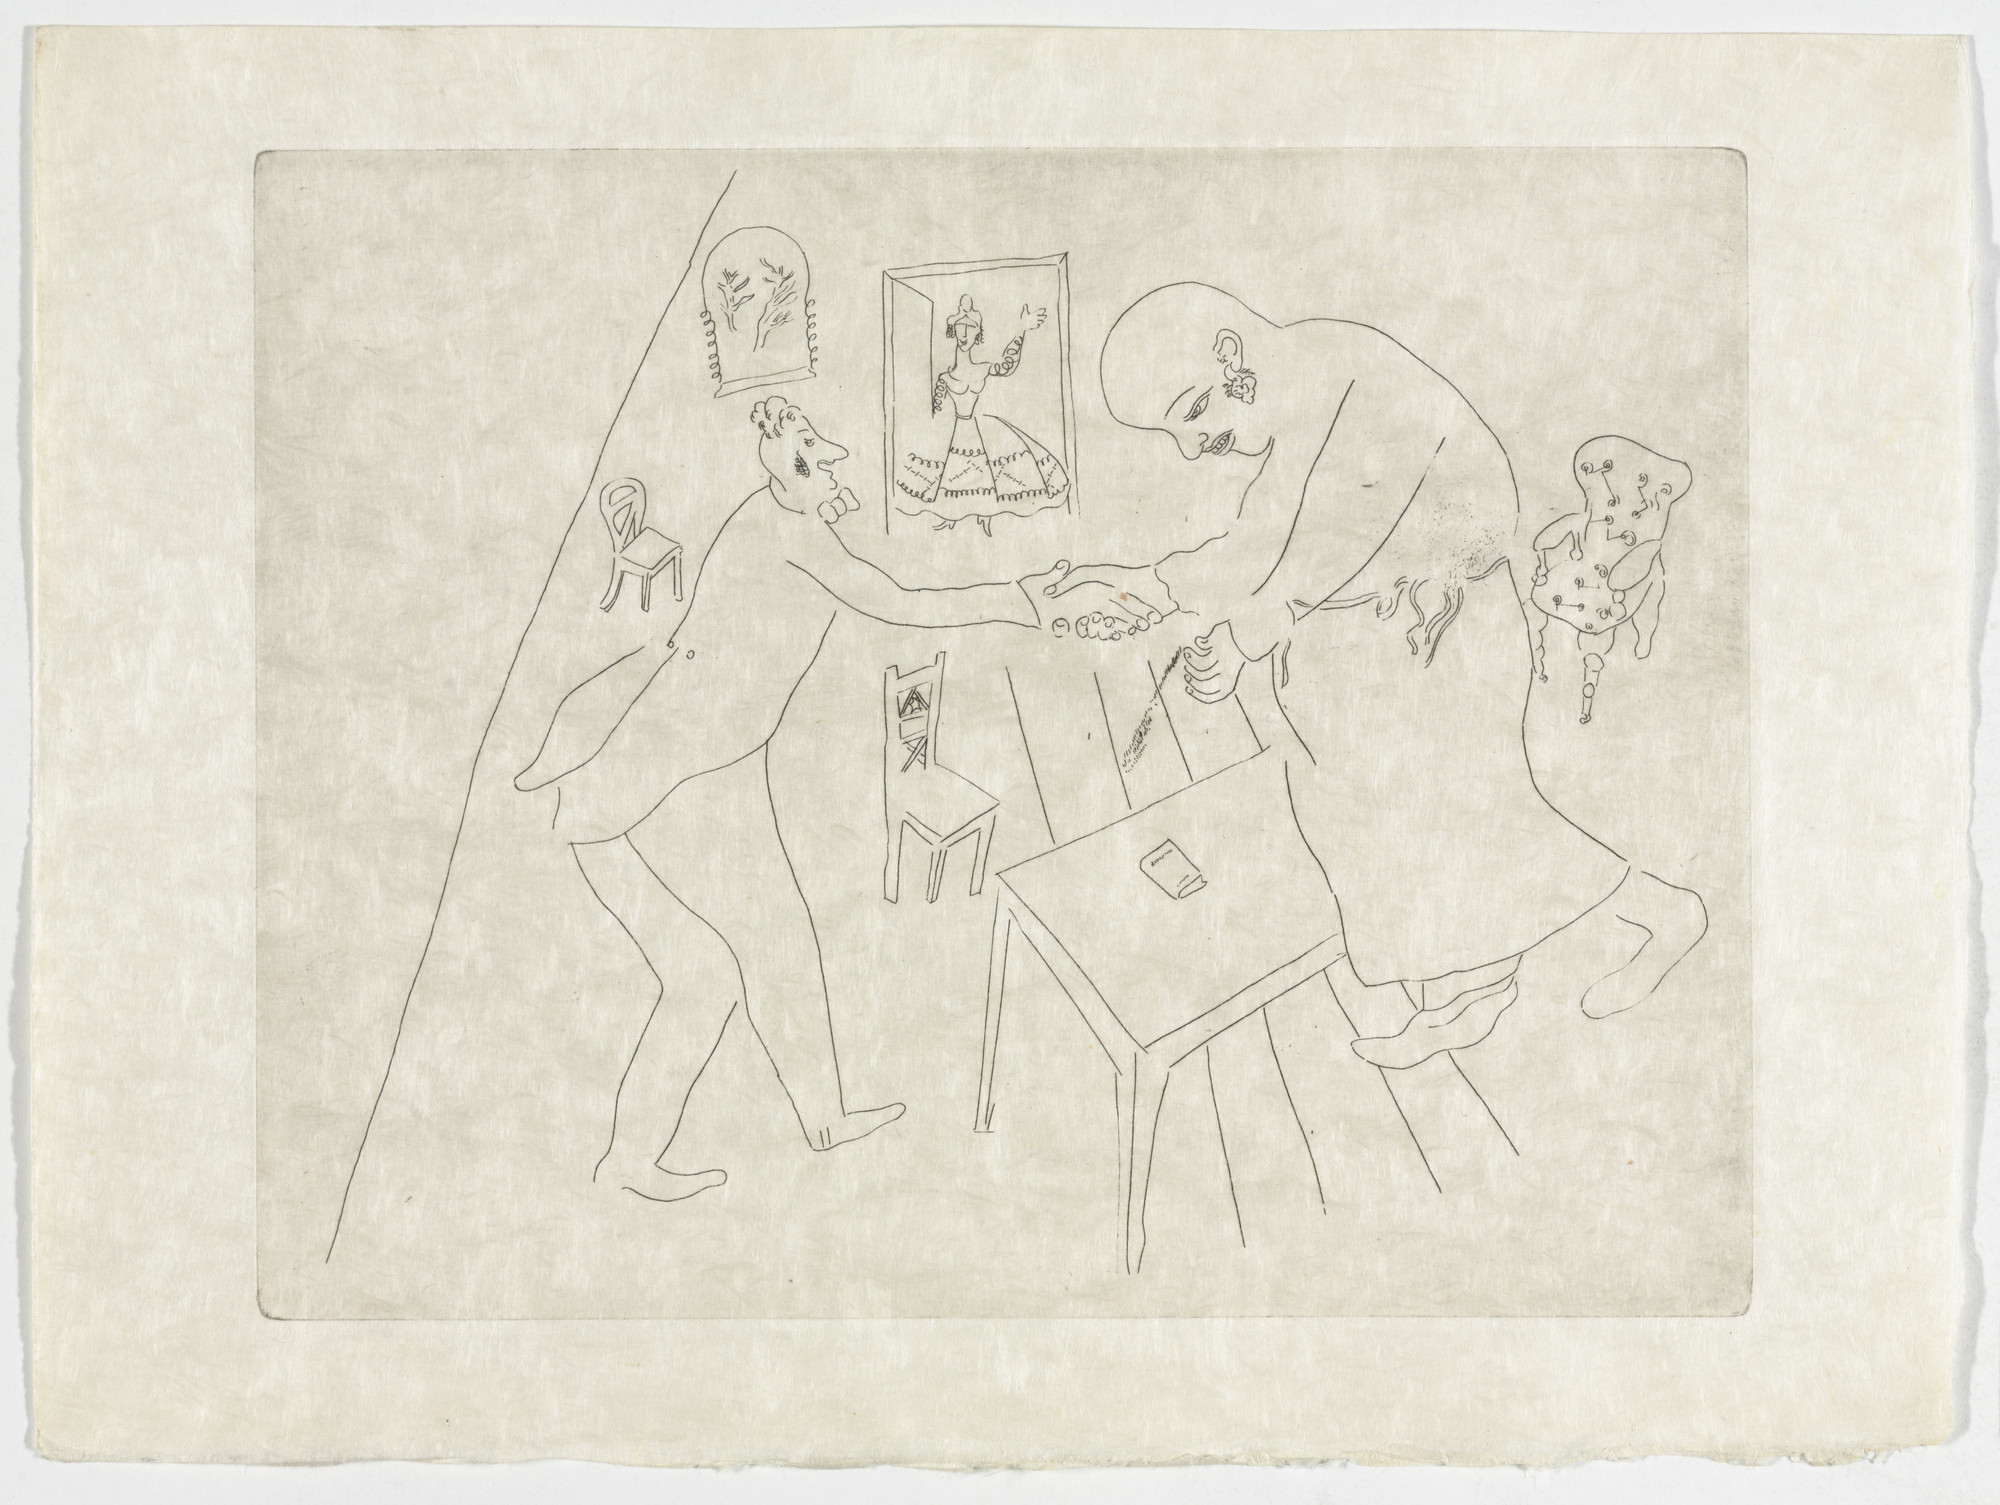 Marc Chagall. Tchitchikov's Farewell to Manilov (Les Adieux de Tchitchikov à Manilov), plate XII (supplementary suite) from Les Âmes mortes. 1923-48